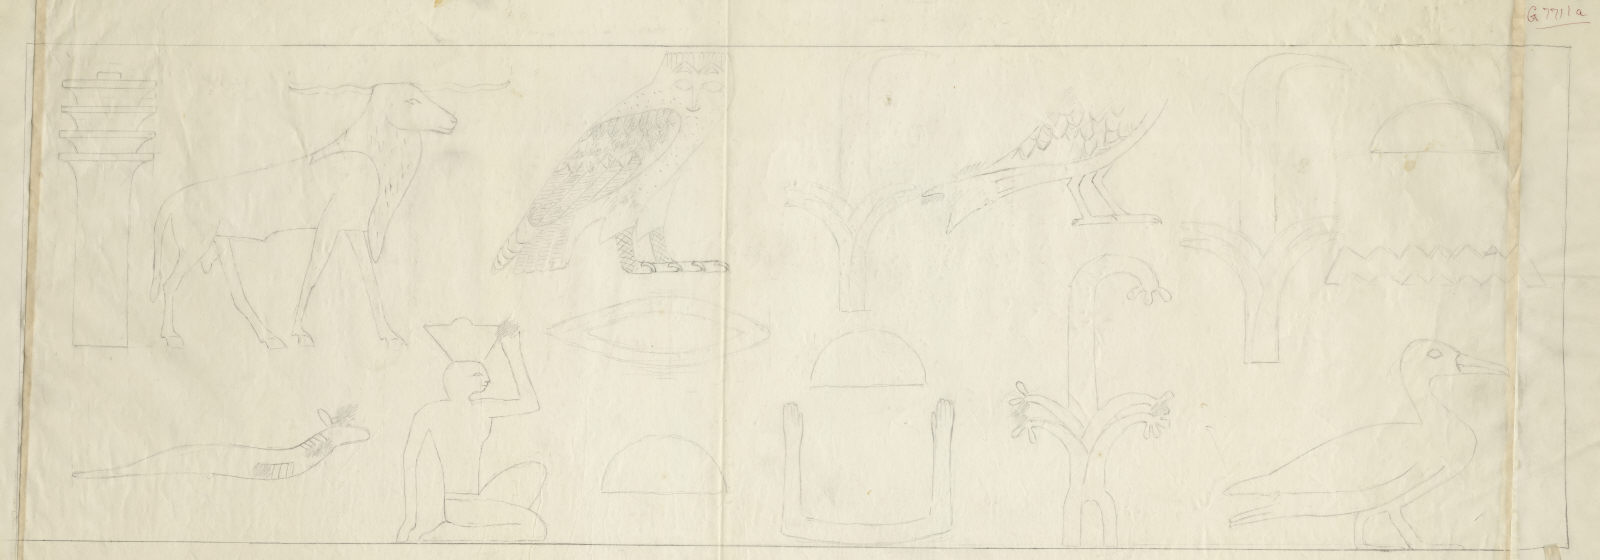 Drawings: G 7711: relief from drum lintel from entrance